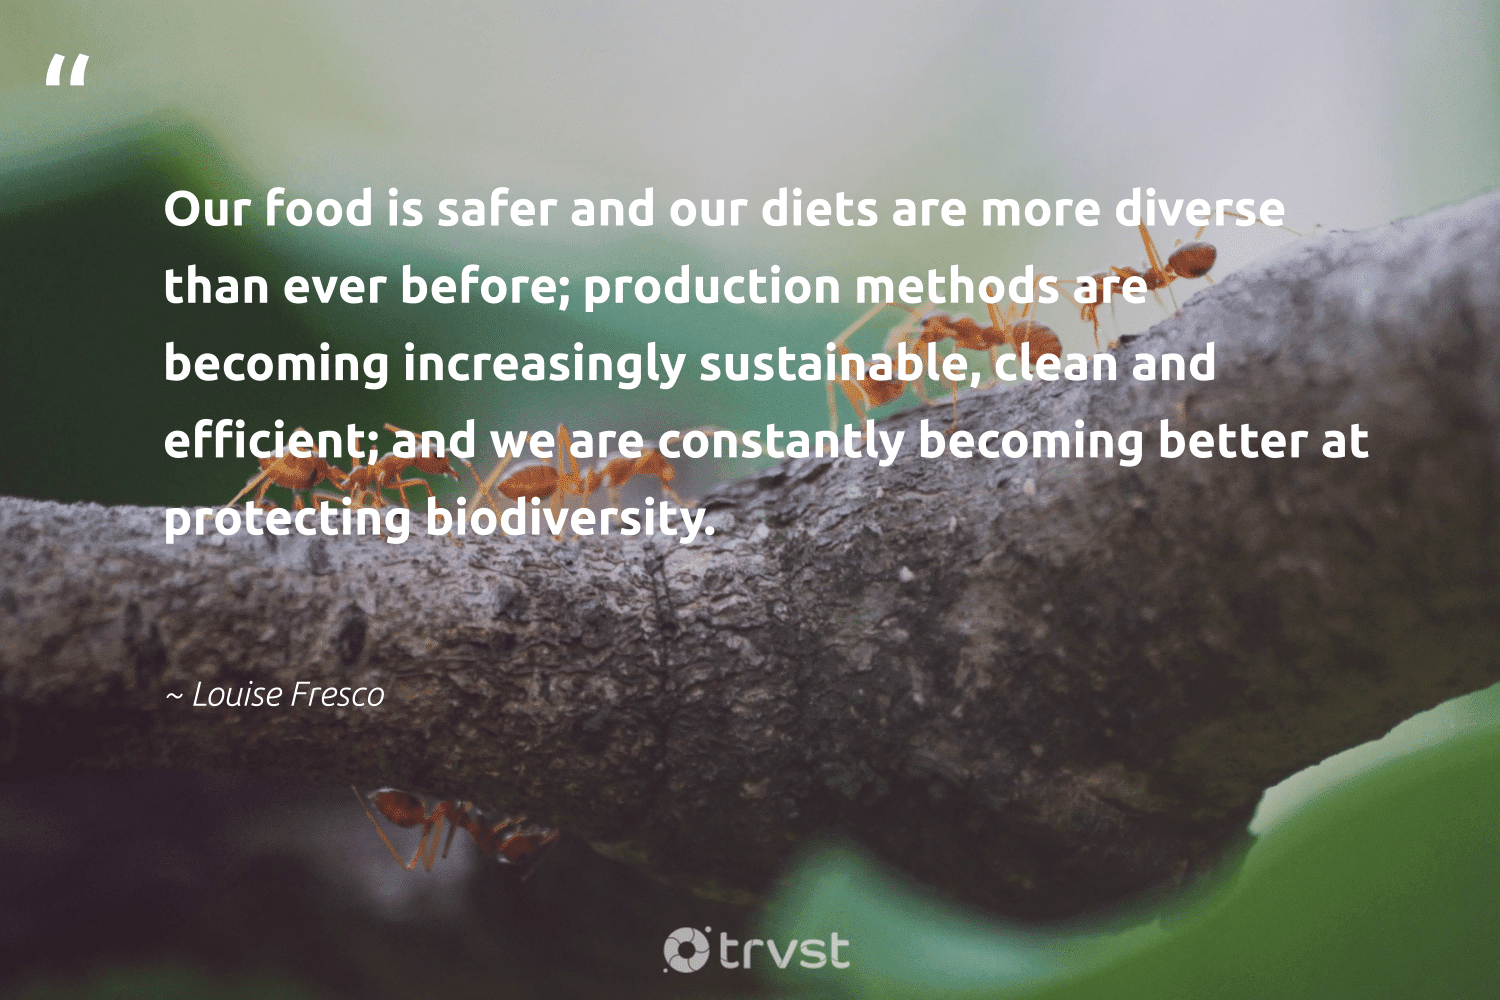 """""""Our food is safer and our diets are more diverse than ever before; production methods are becoming increasingly sustainable, clean and efficient; and we are constantly becoming better at protecting biodiversity.""""  - Louise Fresco #trvst #quotes #biodiversity #sustainable #food #environment #biology #nature #socialimpact #conservation #sanctuary #natural"""